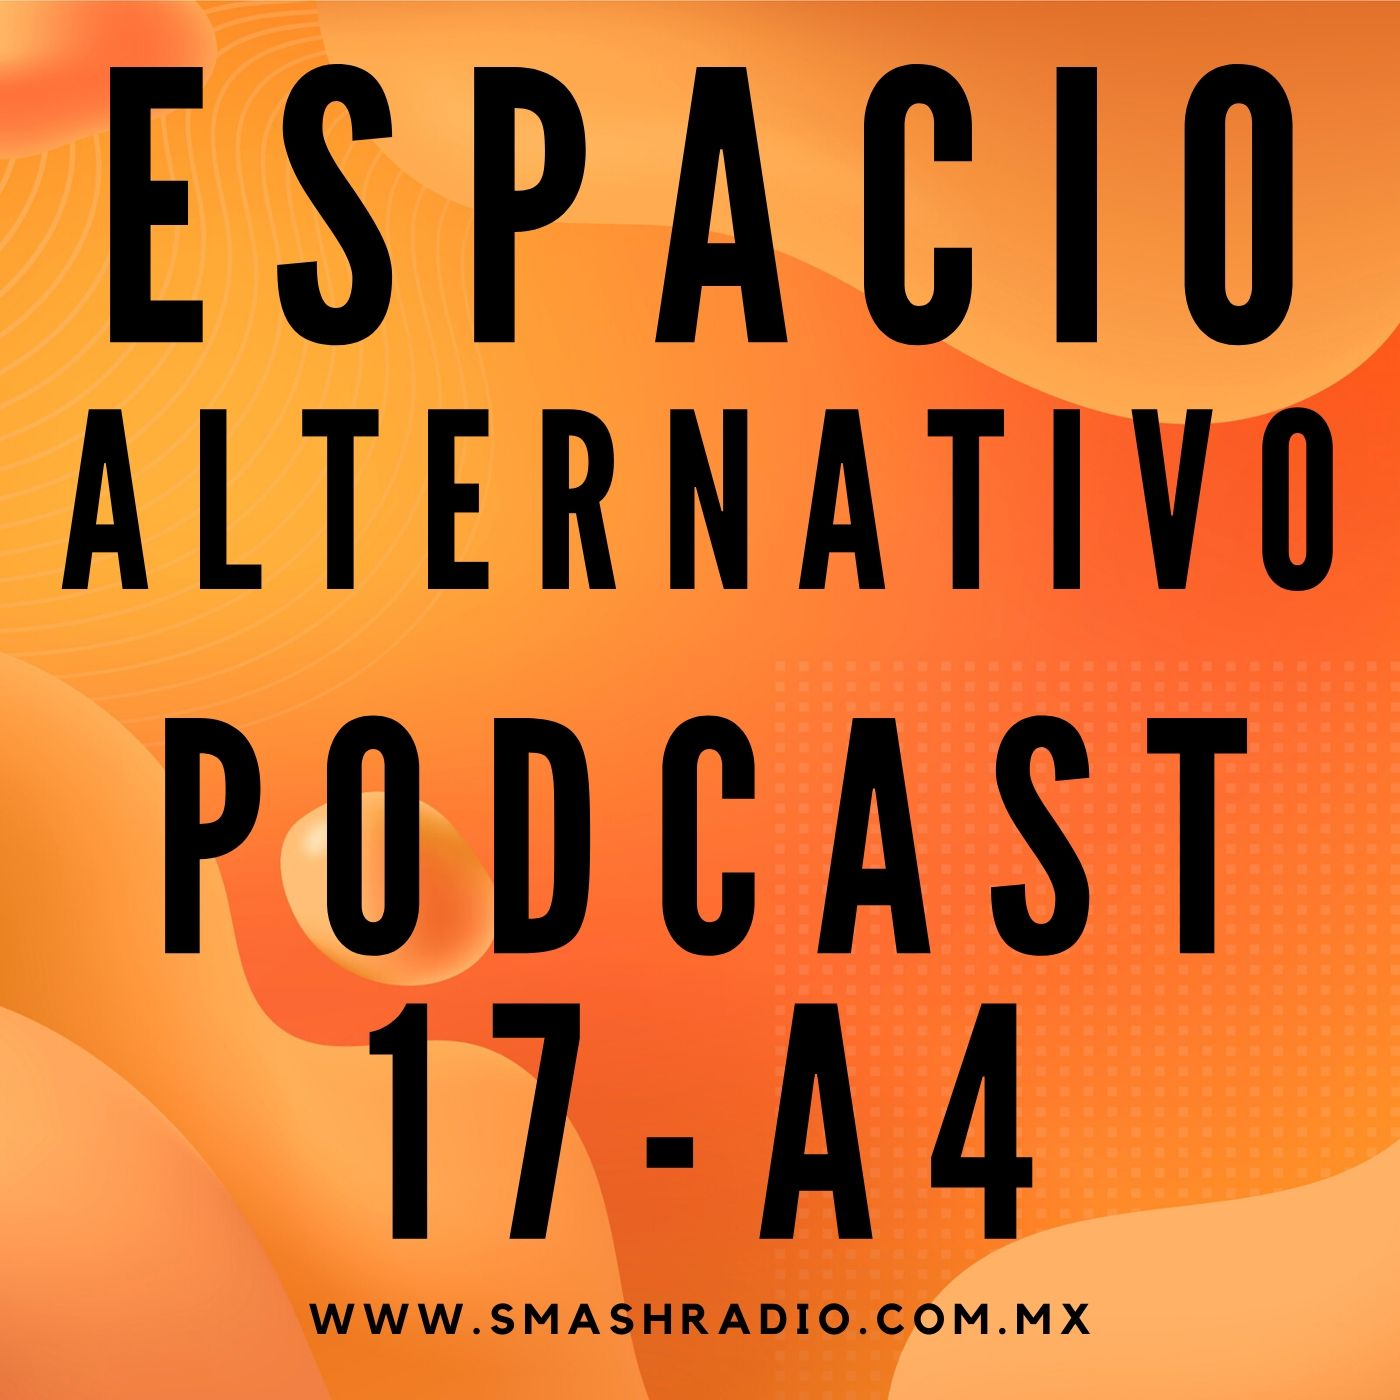 Espacio_Alternativo_Podcast_17-a4